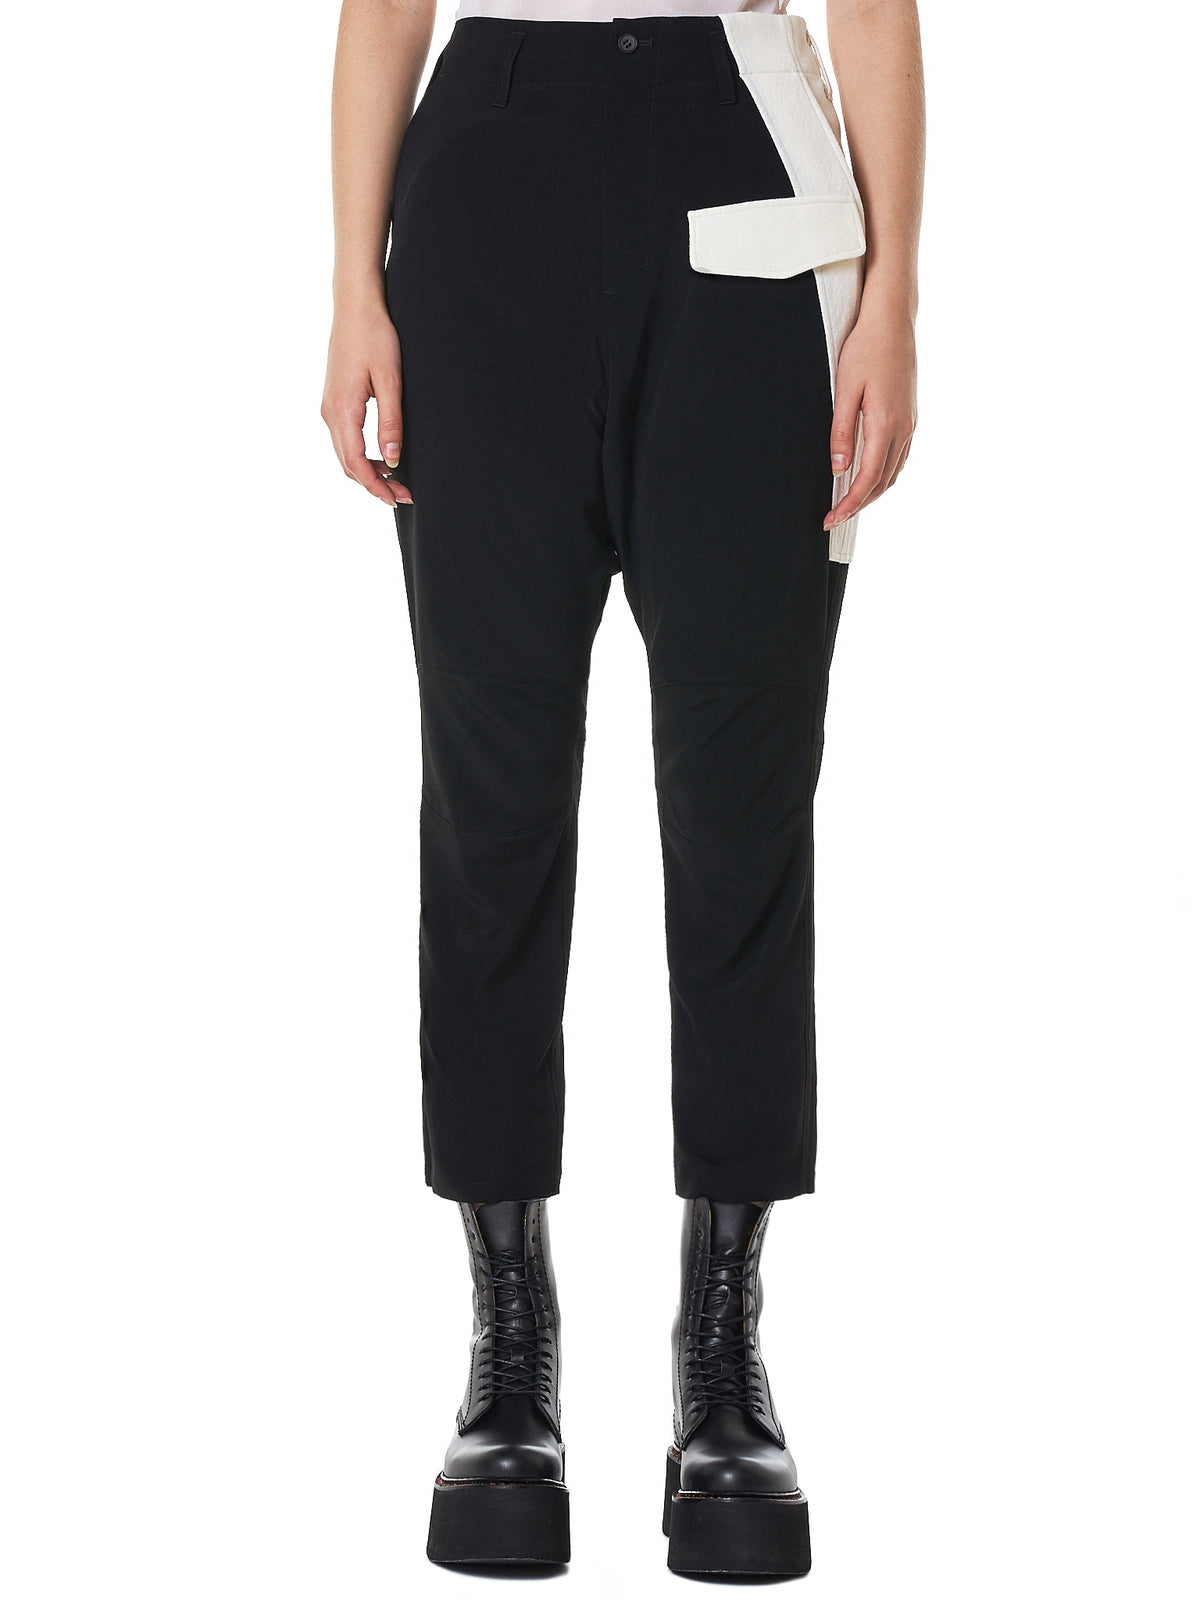 Paneled Knee Trousers (NV-P15-805-BLACK)